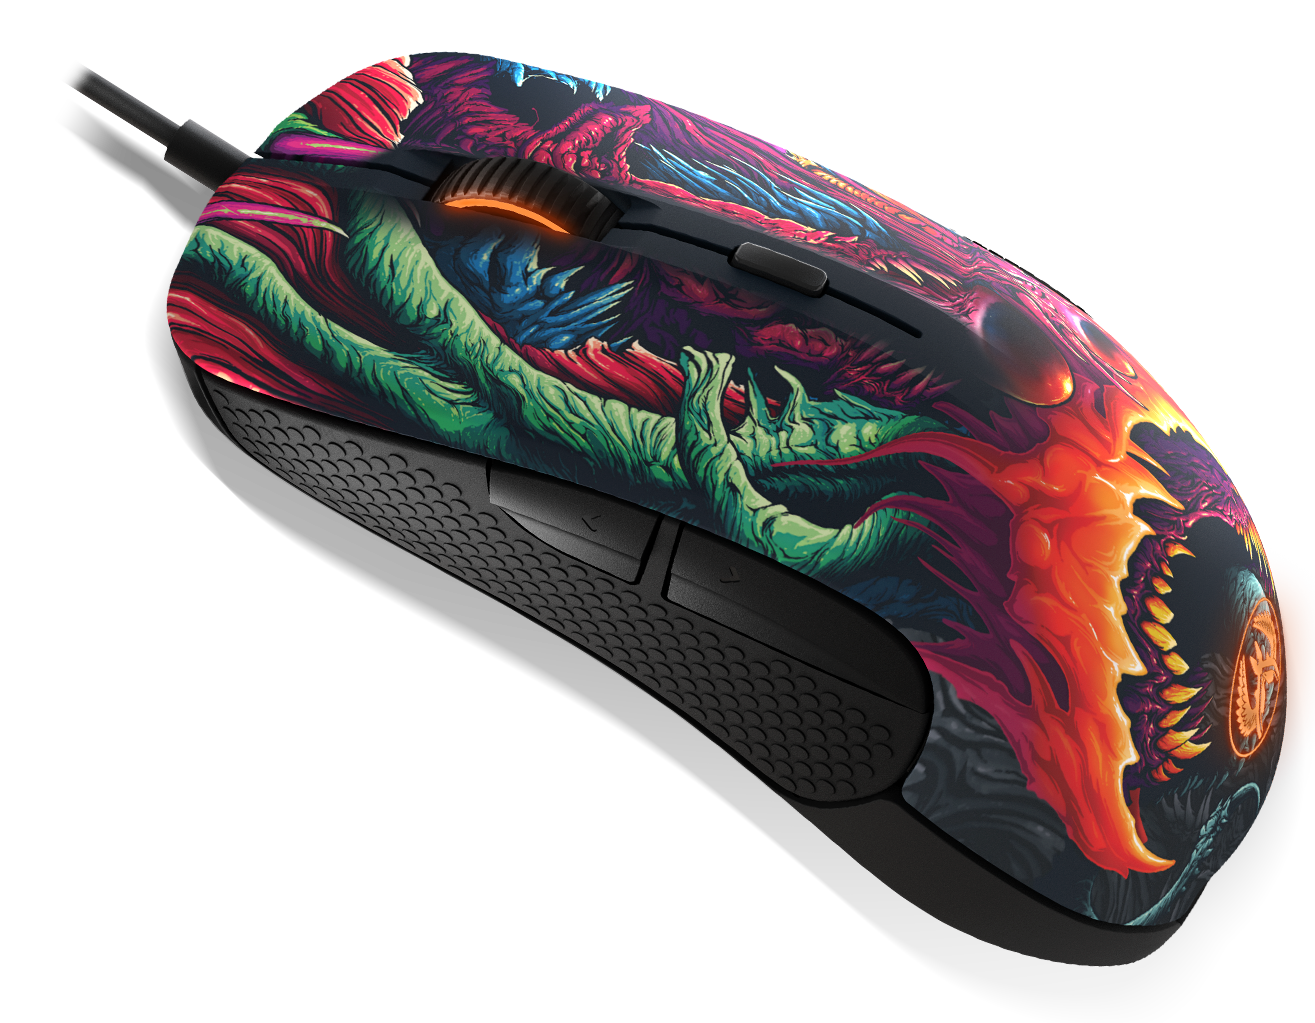 ... -grade gaming mouse featuring an exclusive Hyper Beast design